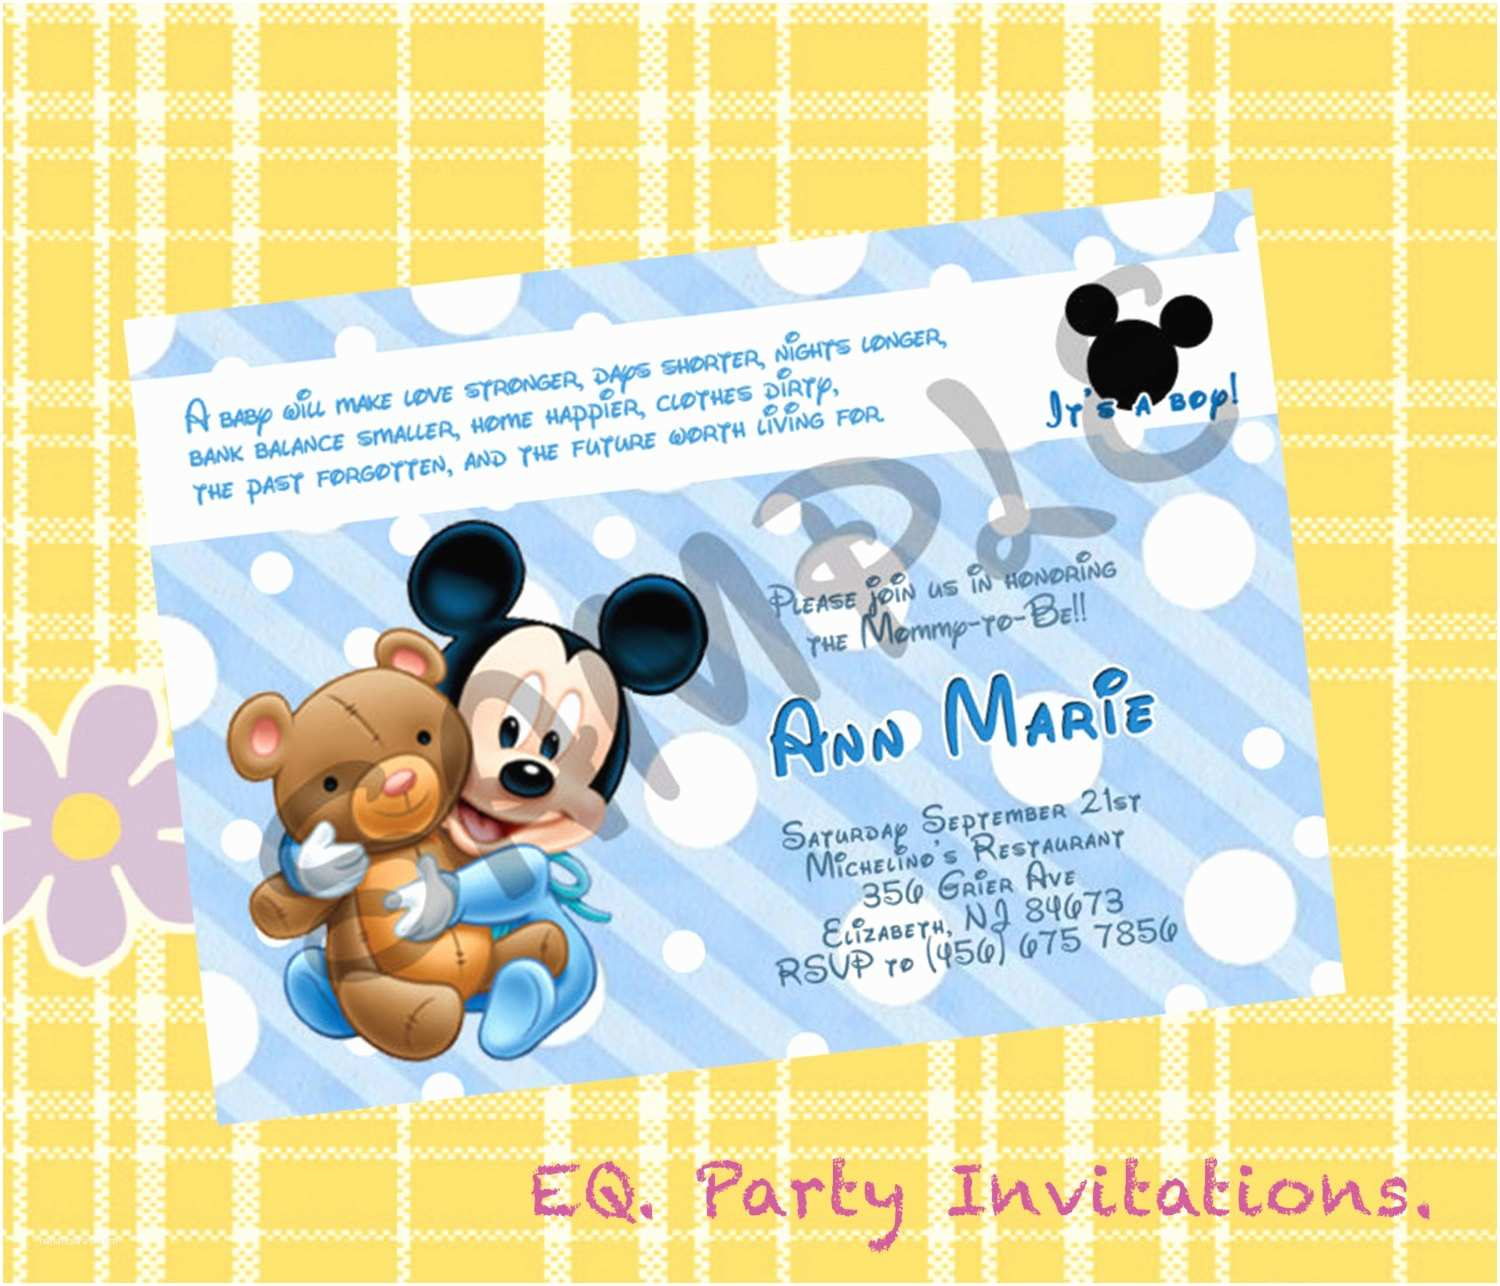 Mickey Mouse Baby Shower Invitations Printable Mickey Mouse Baby Shower Invitation Printable by